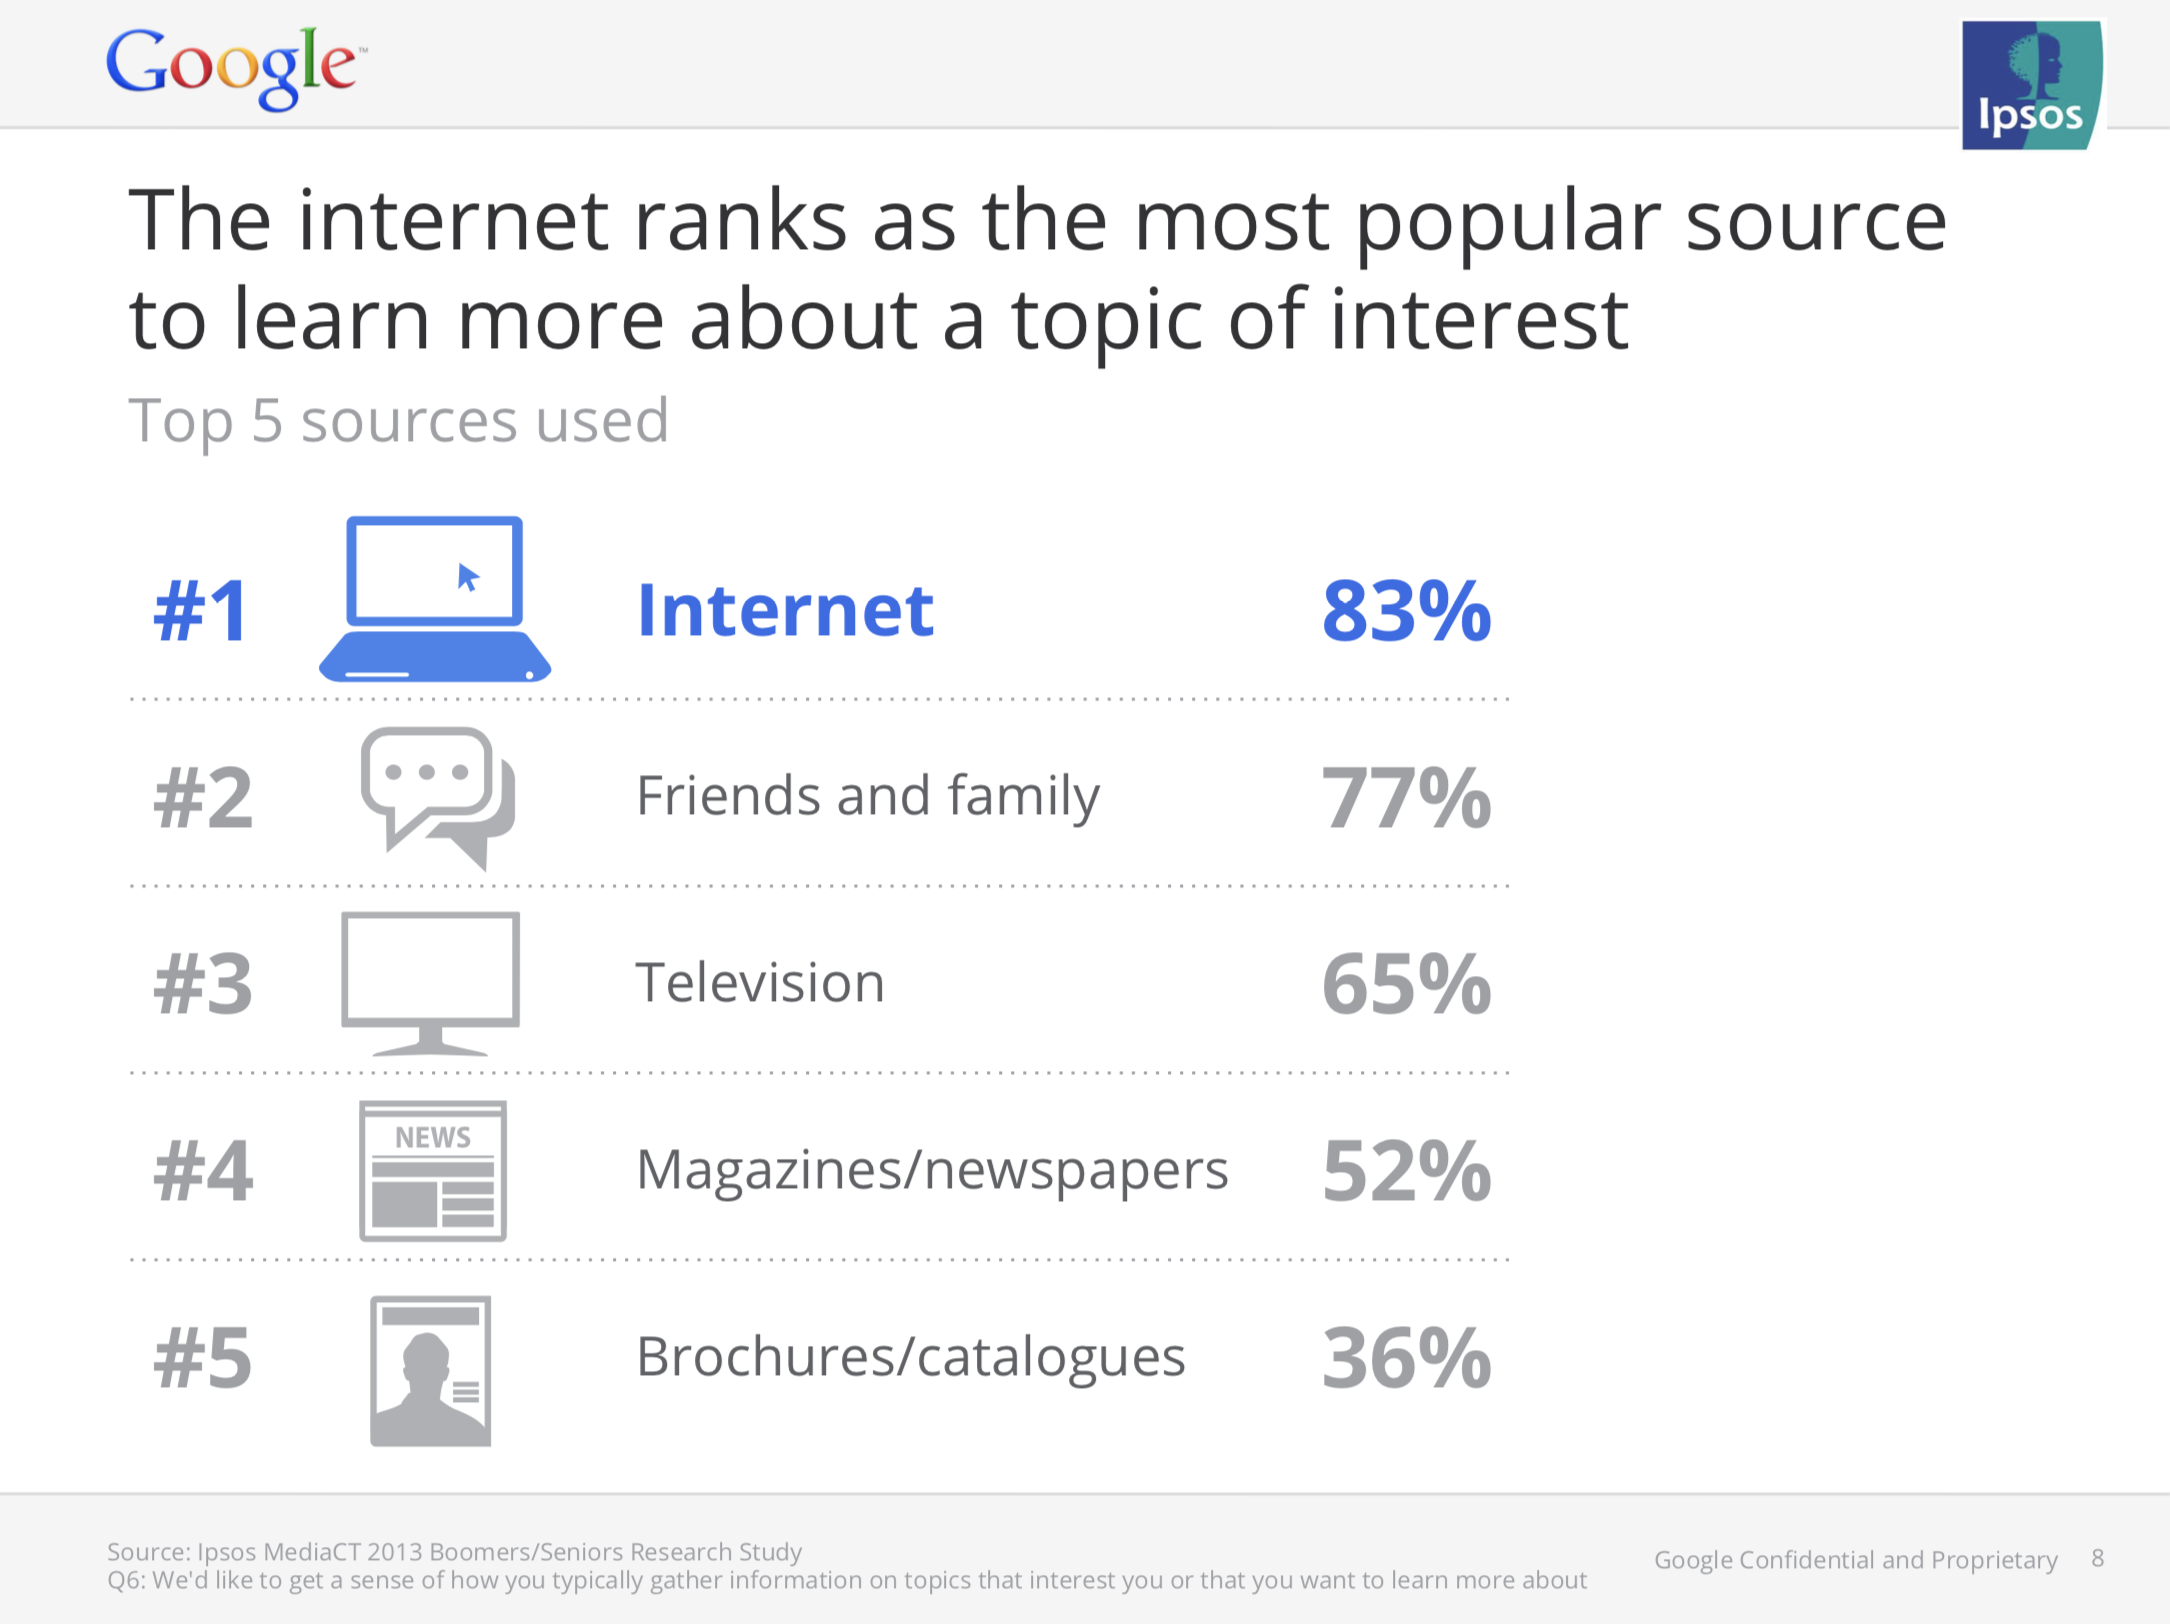 Boomers and Seniors rank the internet as the most popular source to learn more about a topic of interest